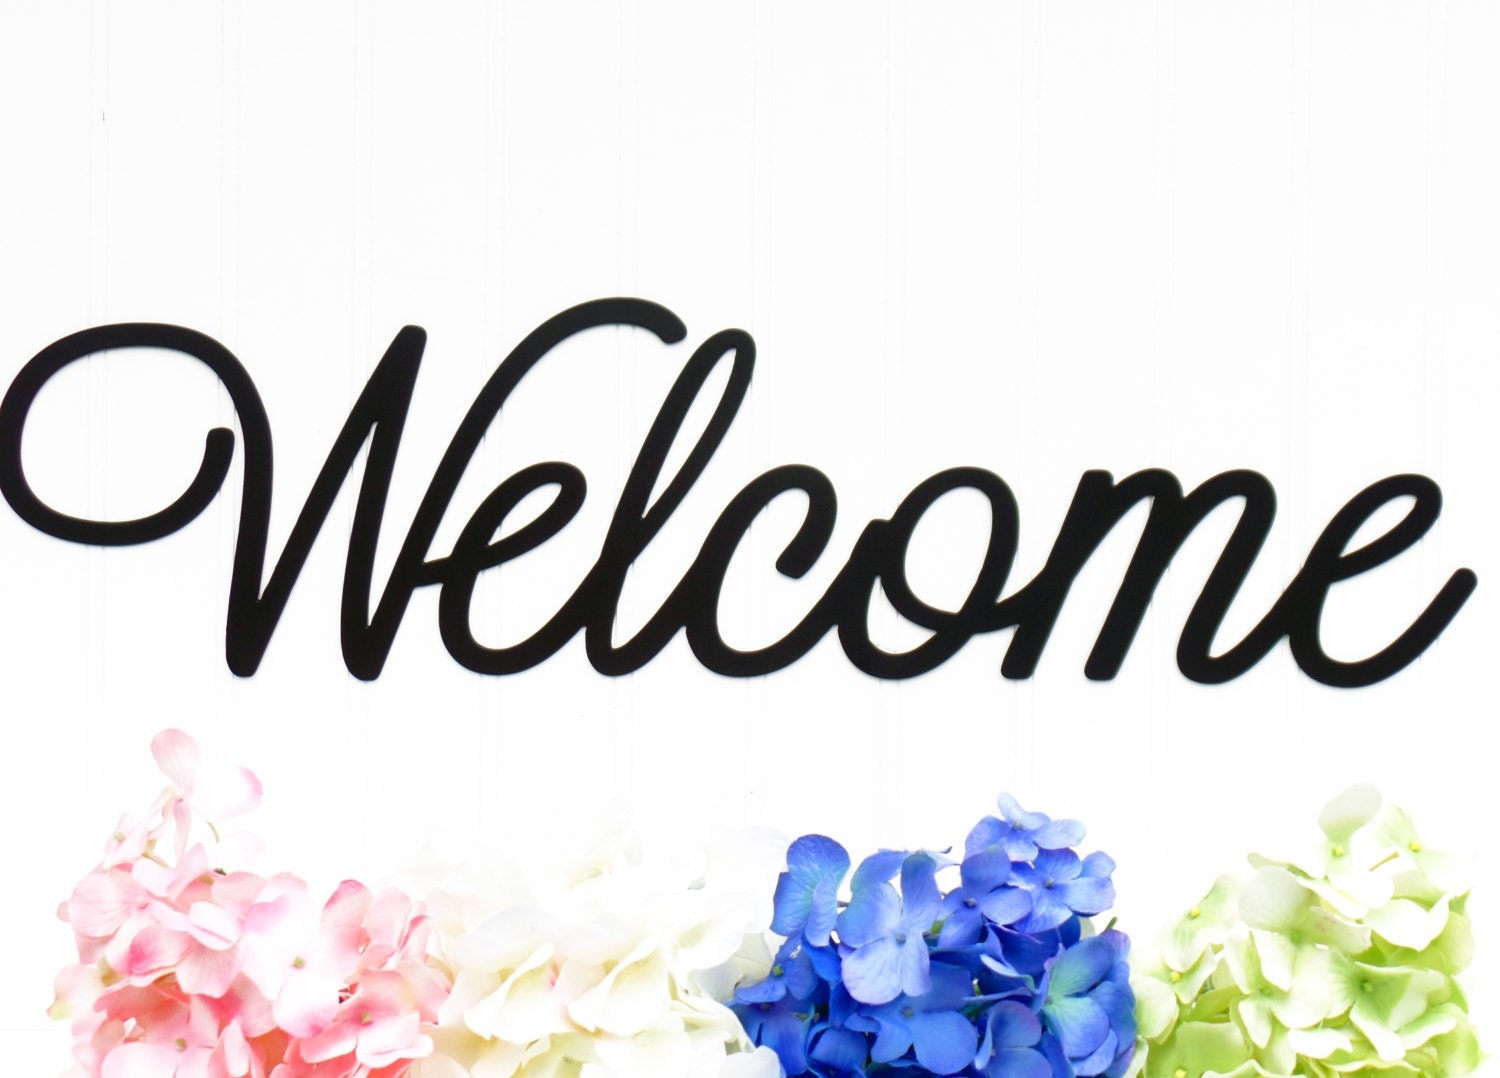 Welcome Metal Sign 22w x 5.5h Laser Cut by RefinedInspirations